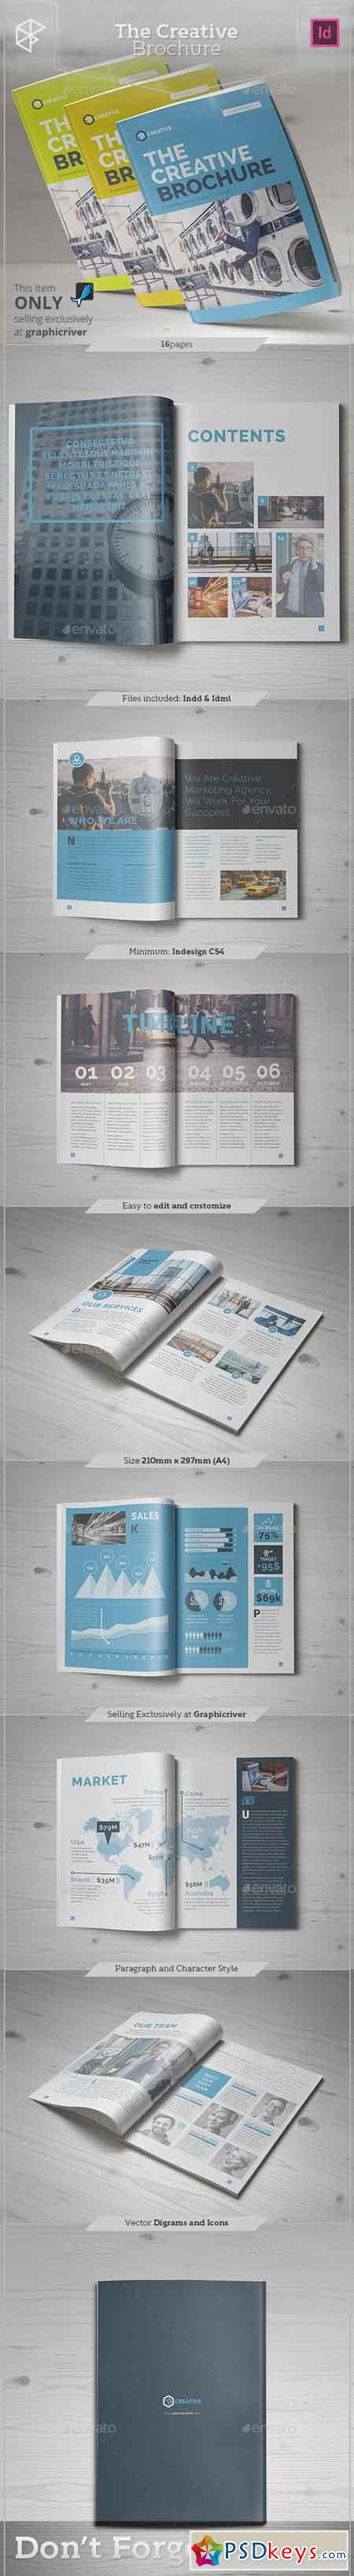 The Creative Brochure 14331214